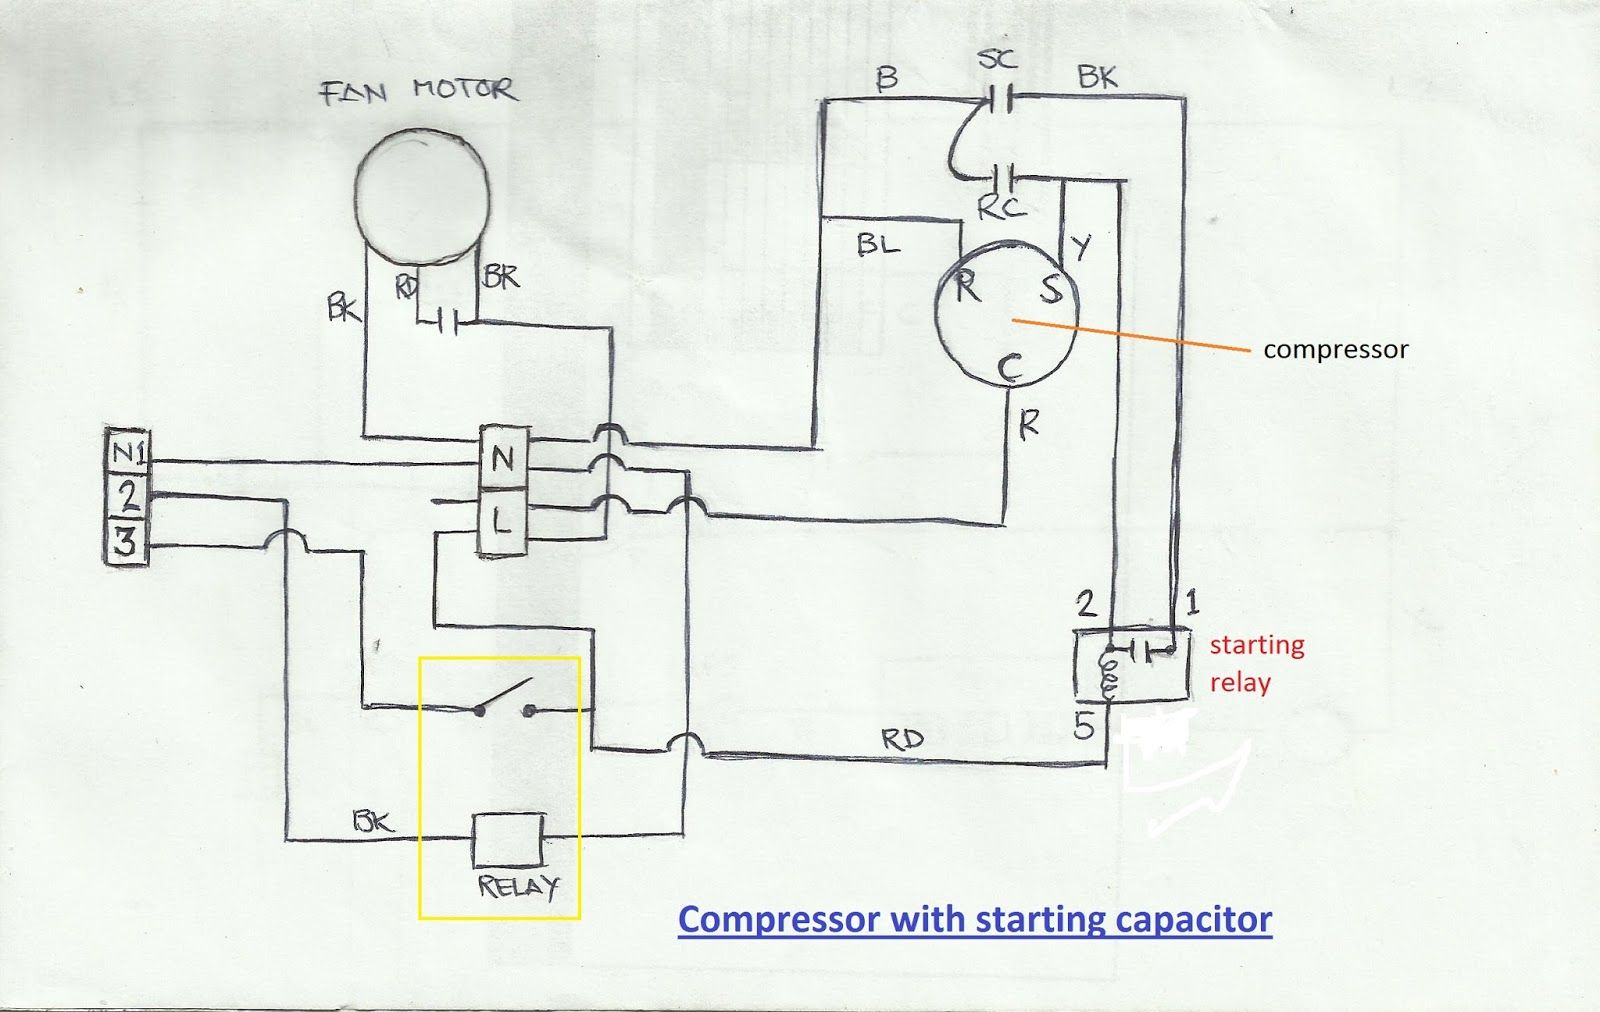 Onida washing machine wiring diagram wiring diagrams schematics before you call a ac air conditioner compressor wiring diagram before you call a ac repair man visit my blog for onida washing machine wiring diagram swarovskicordoba Gallery